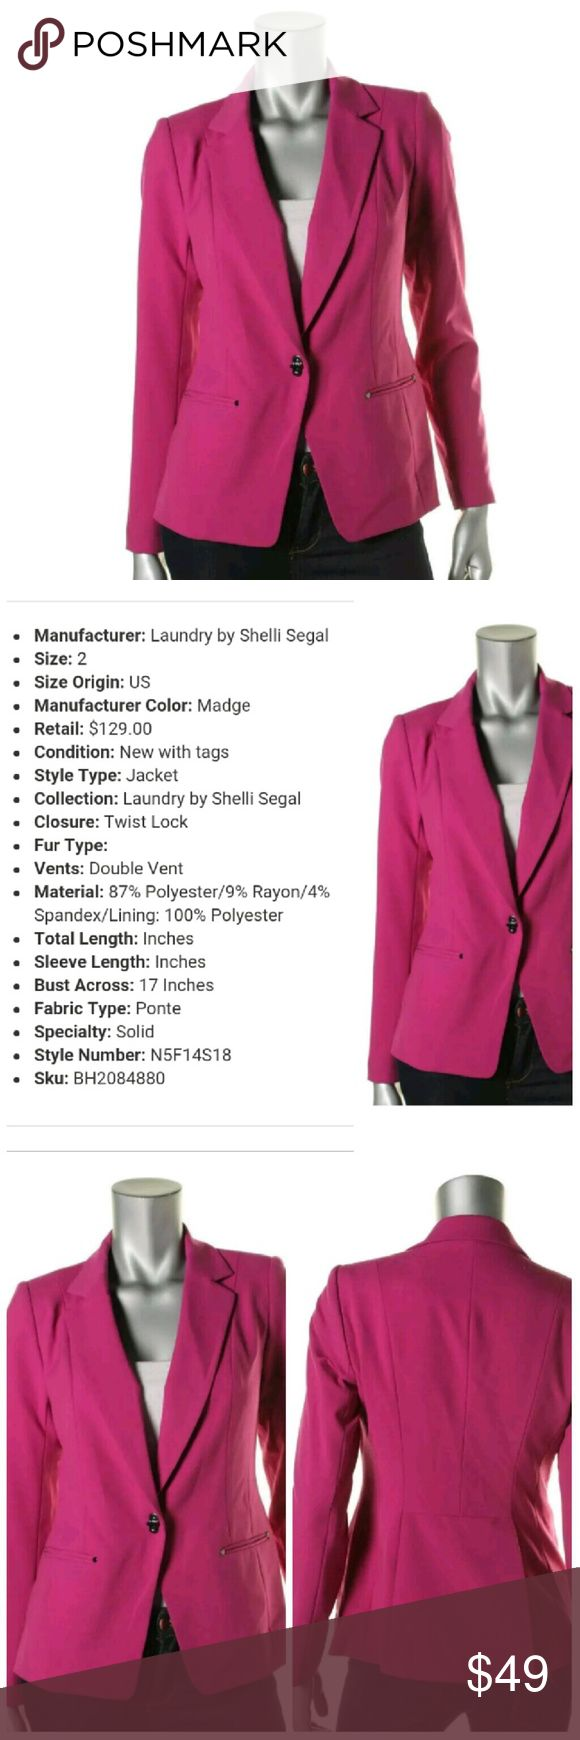 Laundry by Shelli Segal Plum Blazer NWT 2 Closet must have! Plum blazer jacket from Laundry by Shelli Segal in size 2. New with tags. Specific measurements in photo 2. Laundry by Shelli Segal Jackets & Coats Blazers